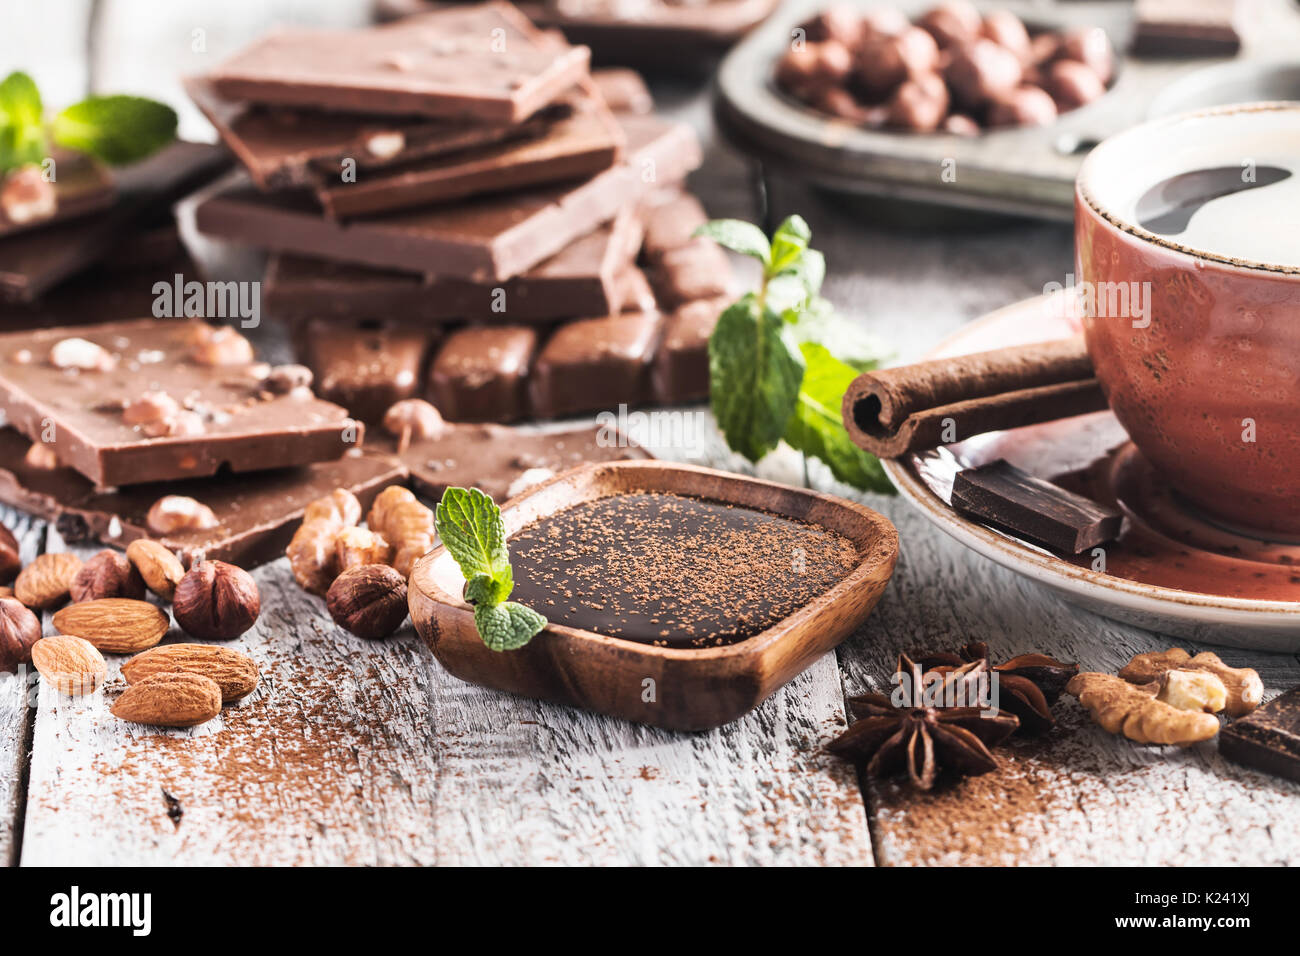 Assortment of chocolate types - Stock Image